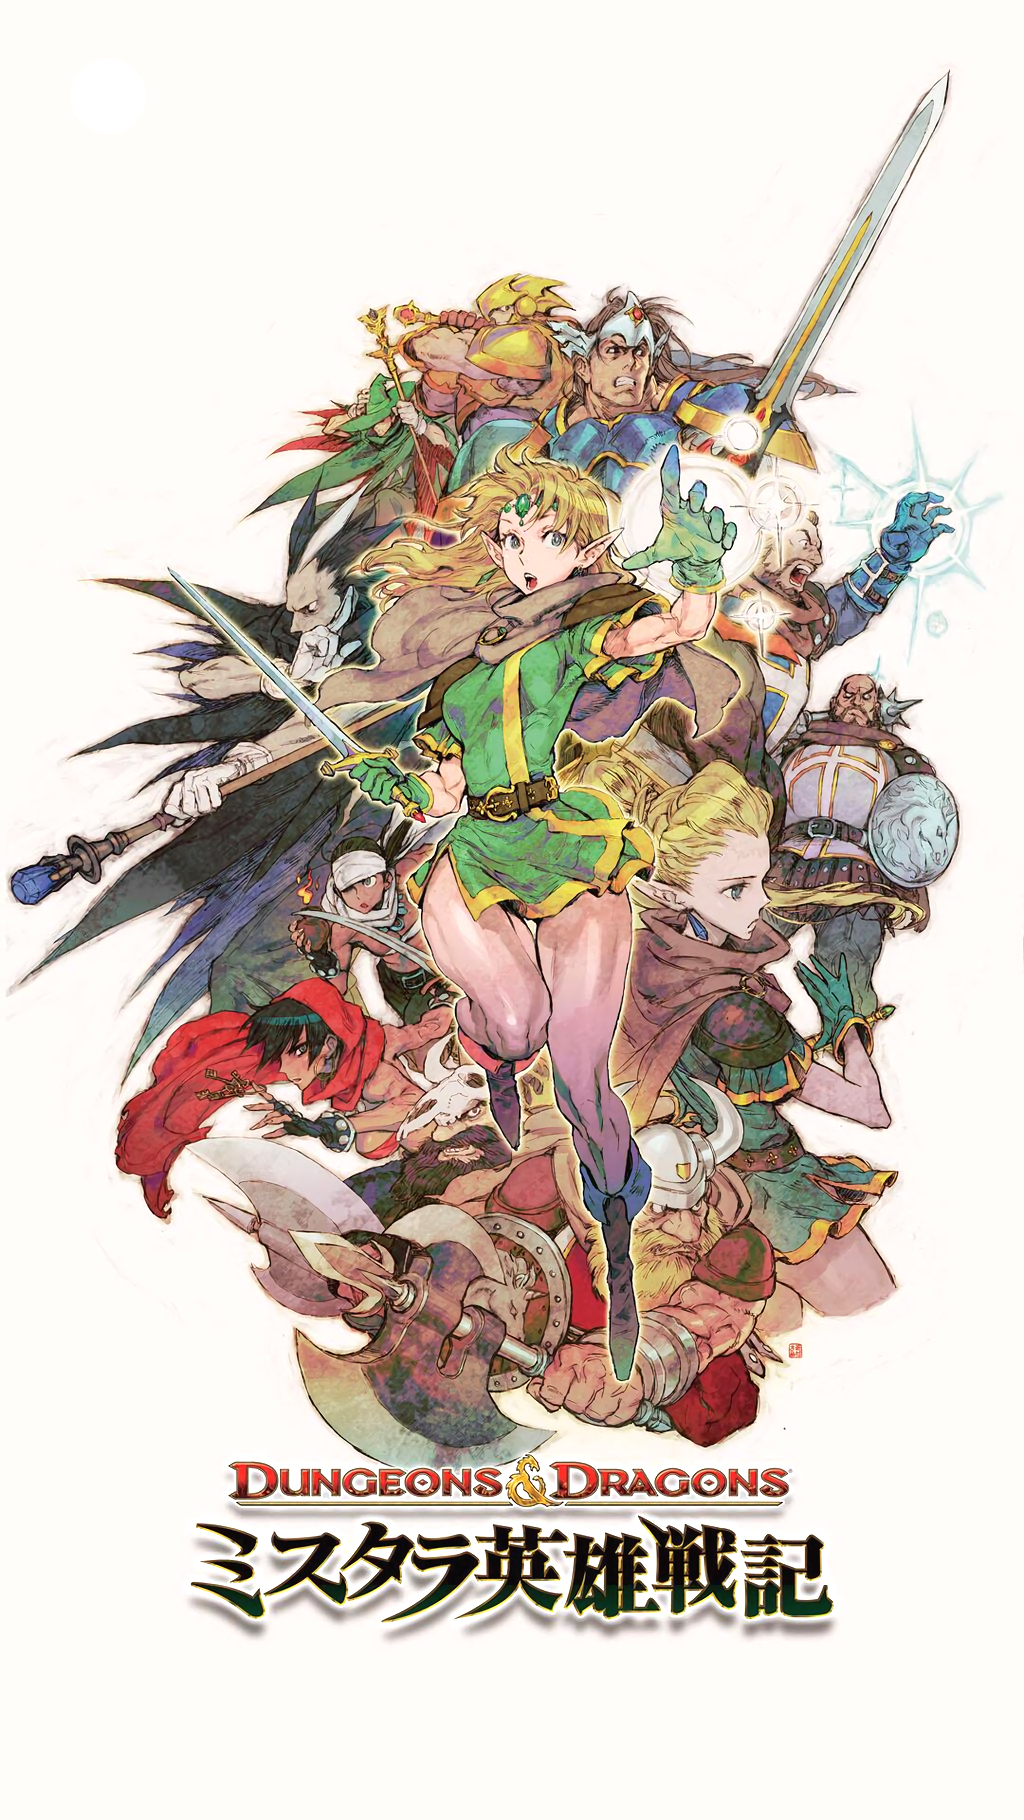 Dungeons & dragoni Shadow Over Mystara